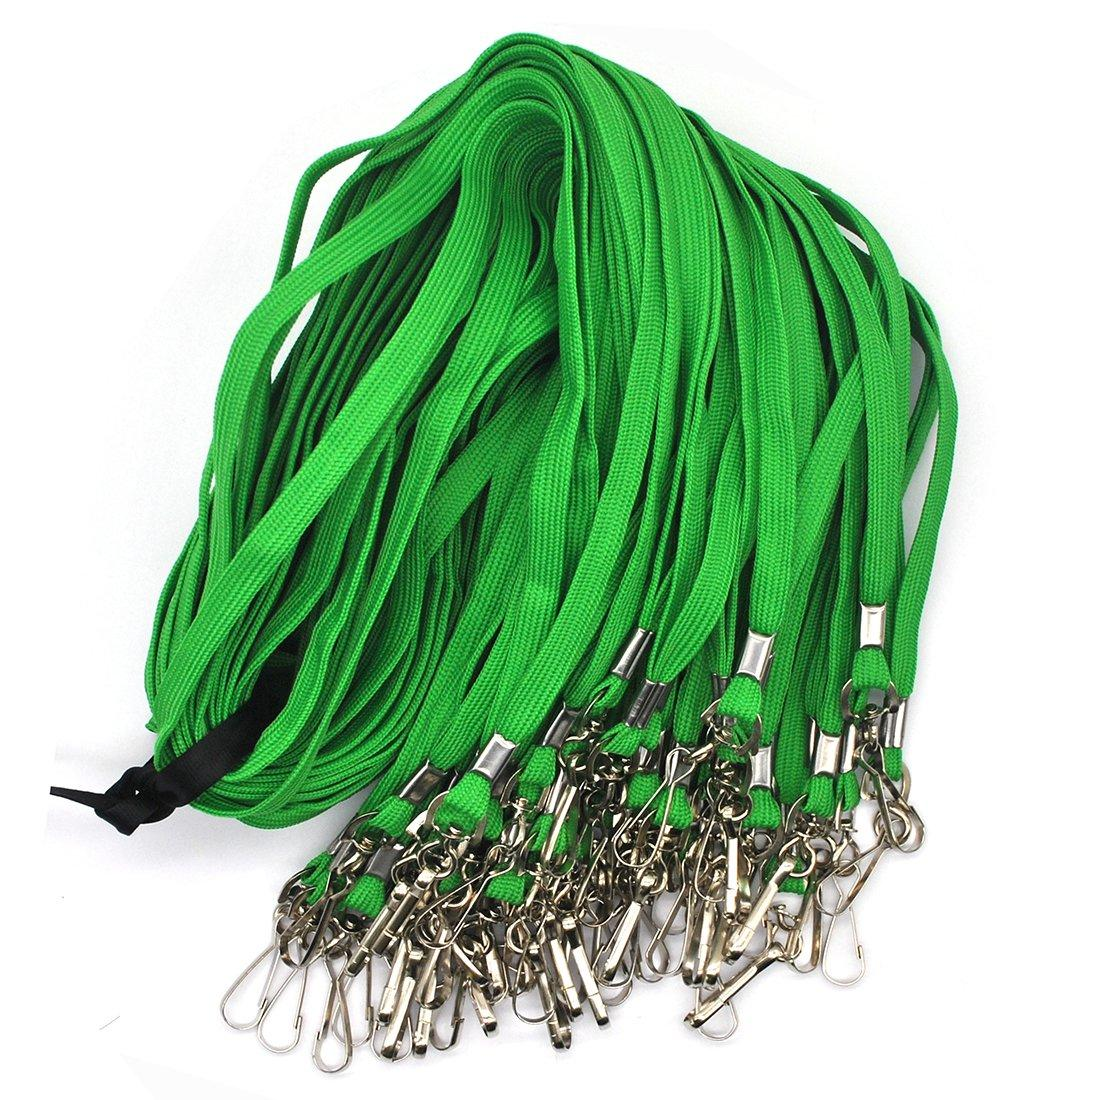 Green Bulk Lanyard 32 Flat Lanyards with Swivel Hook Attachment Lanyards with Clip